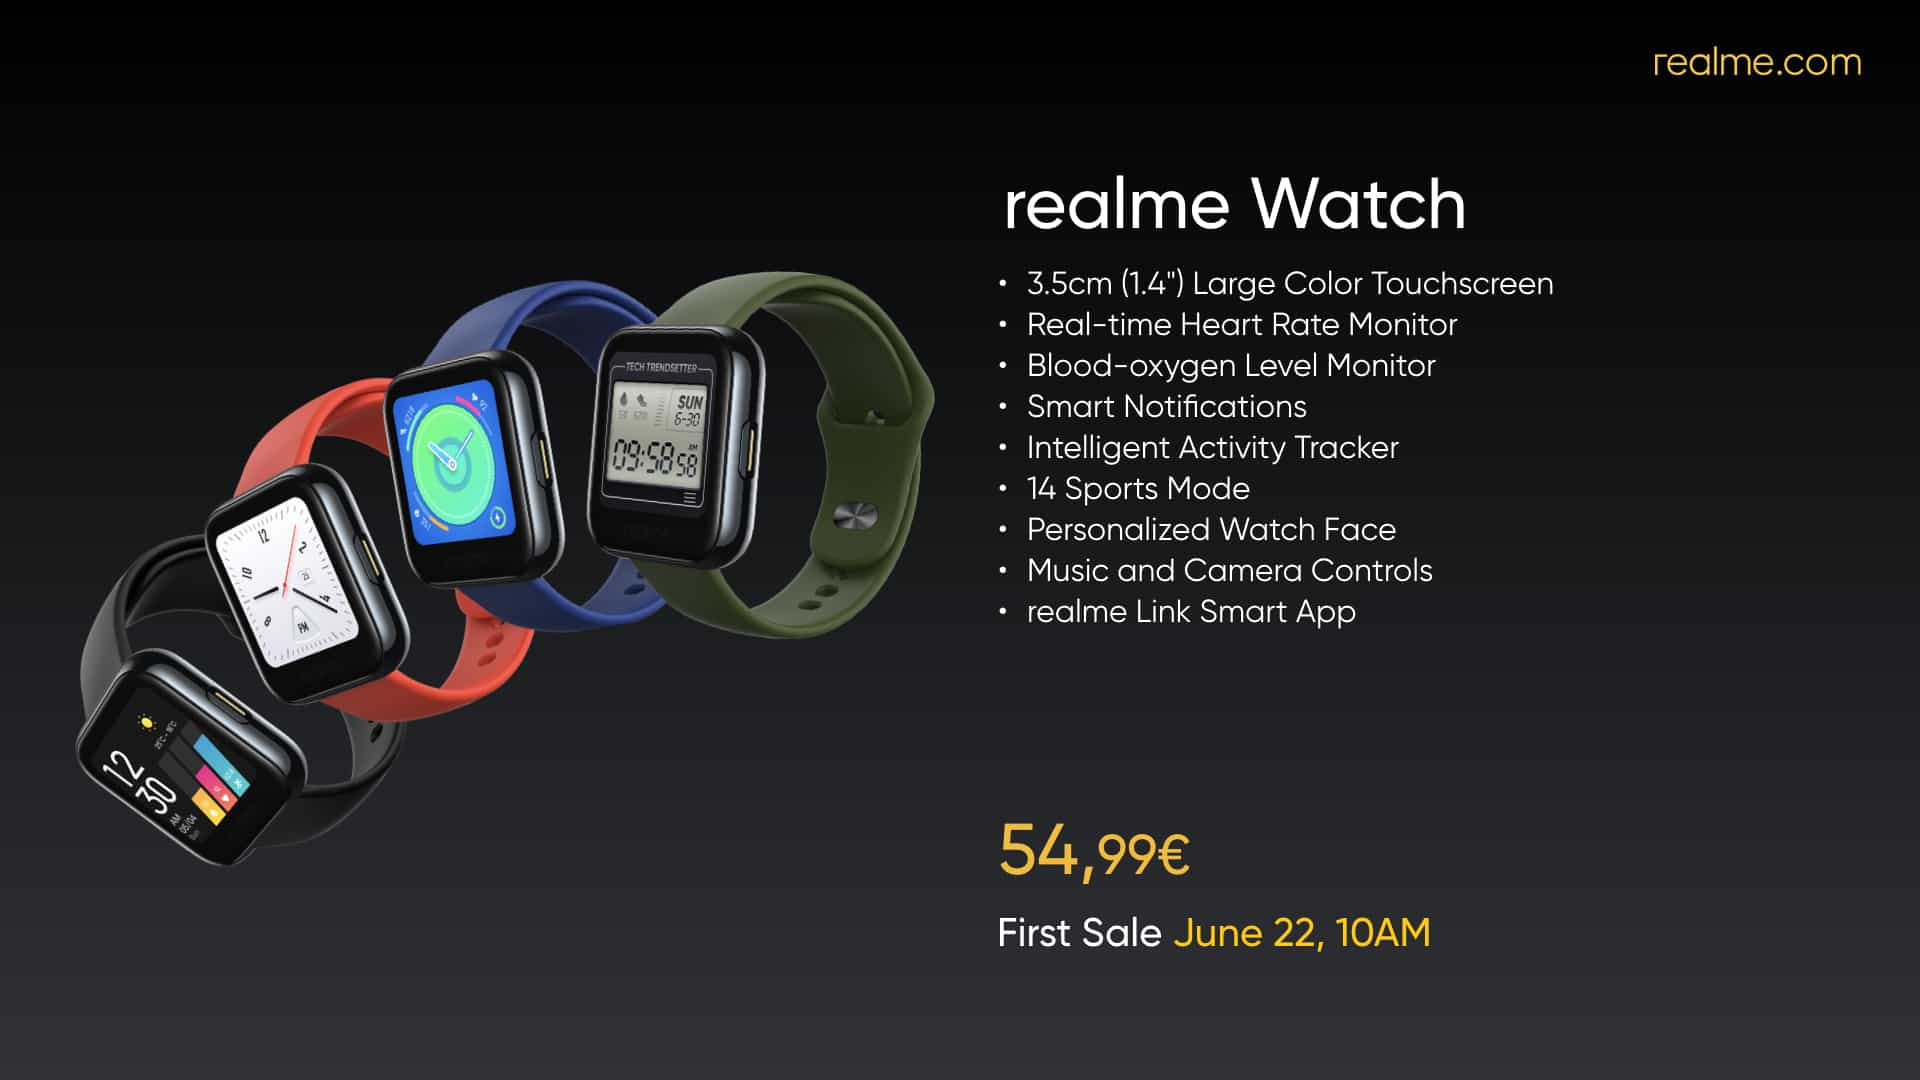 Realme Watch image 1